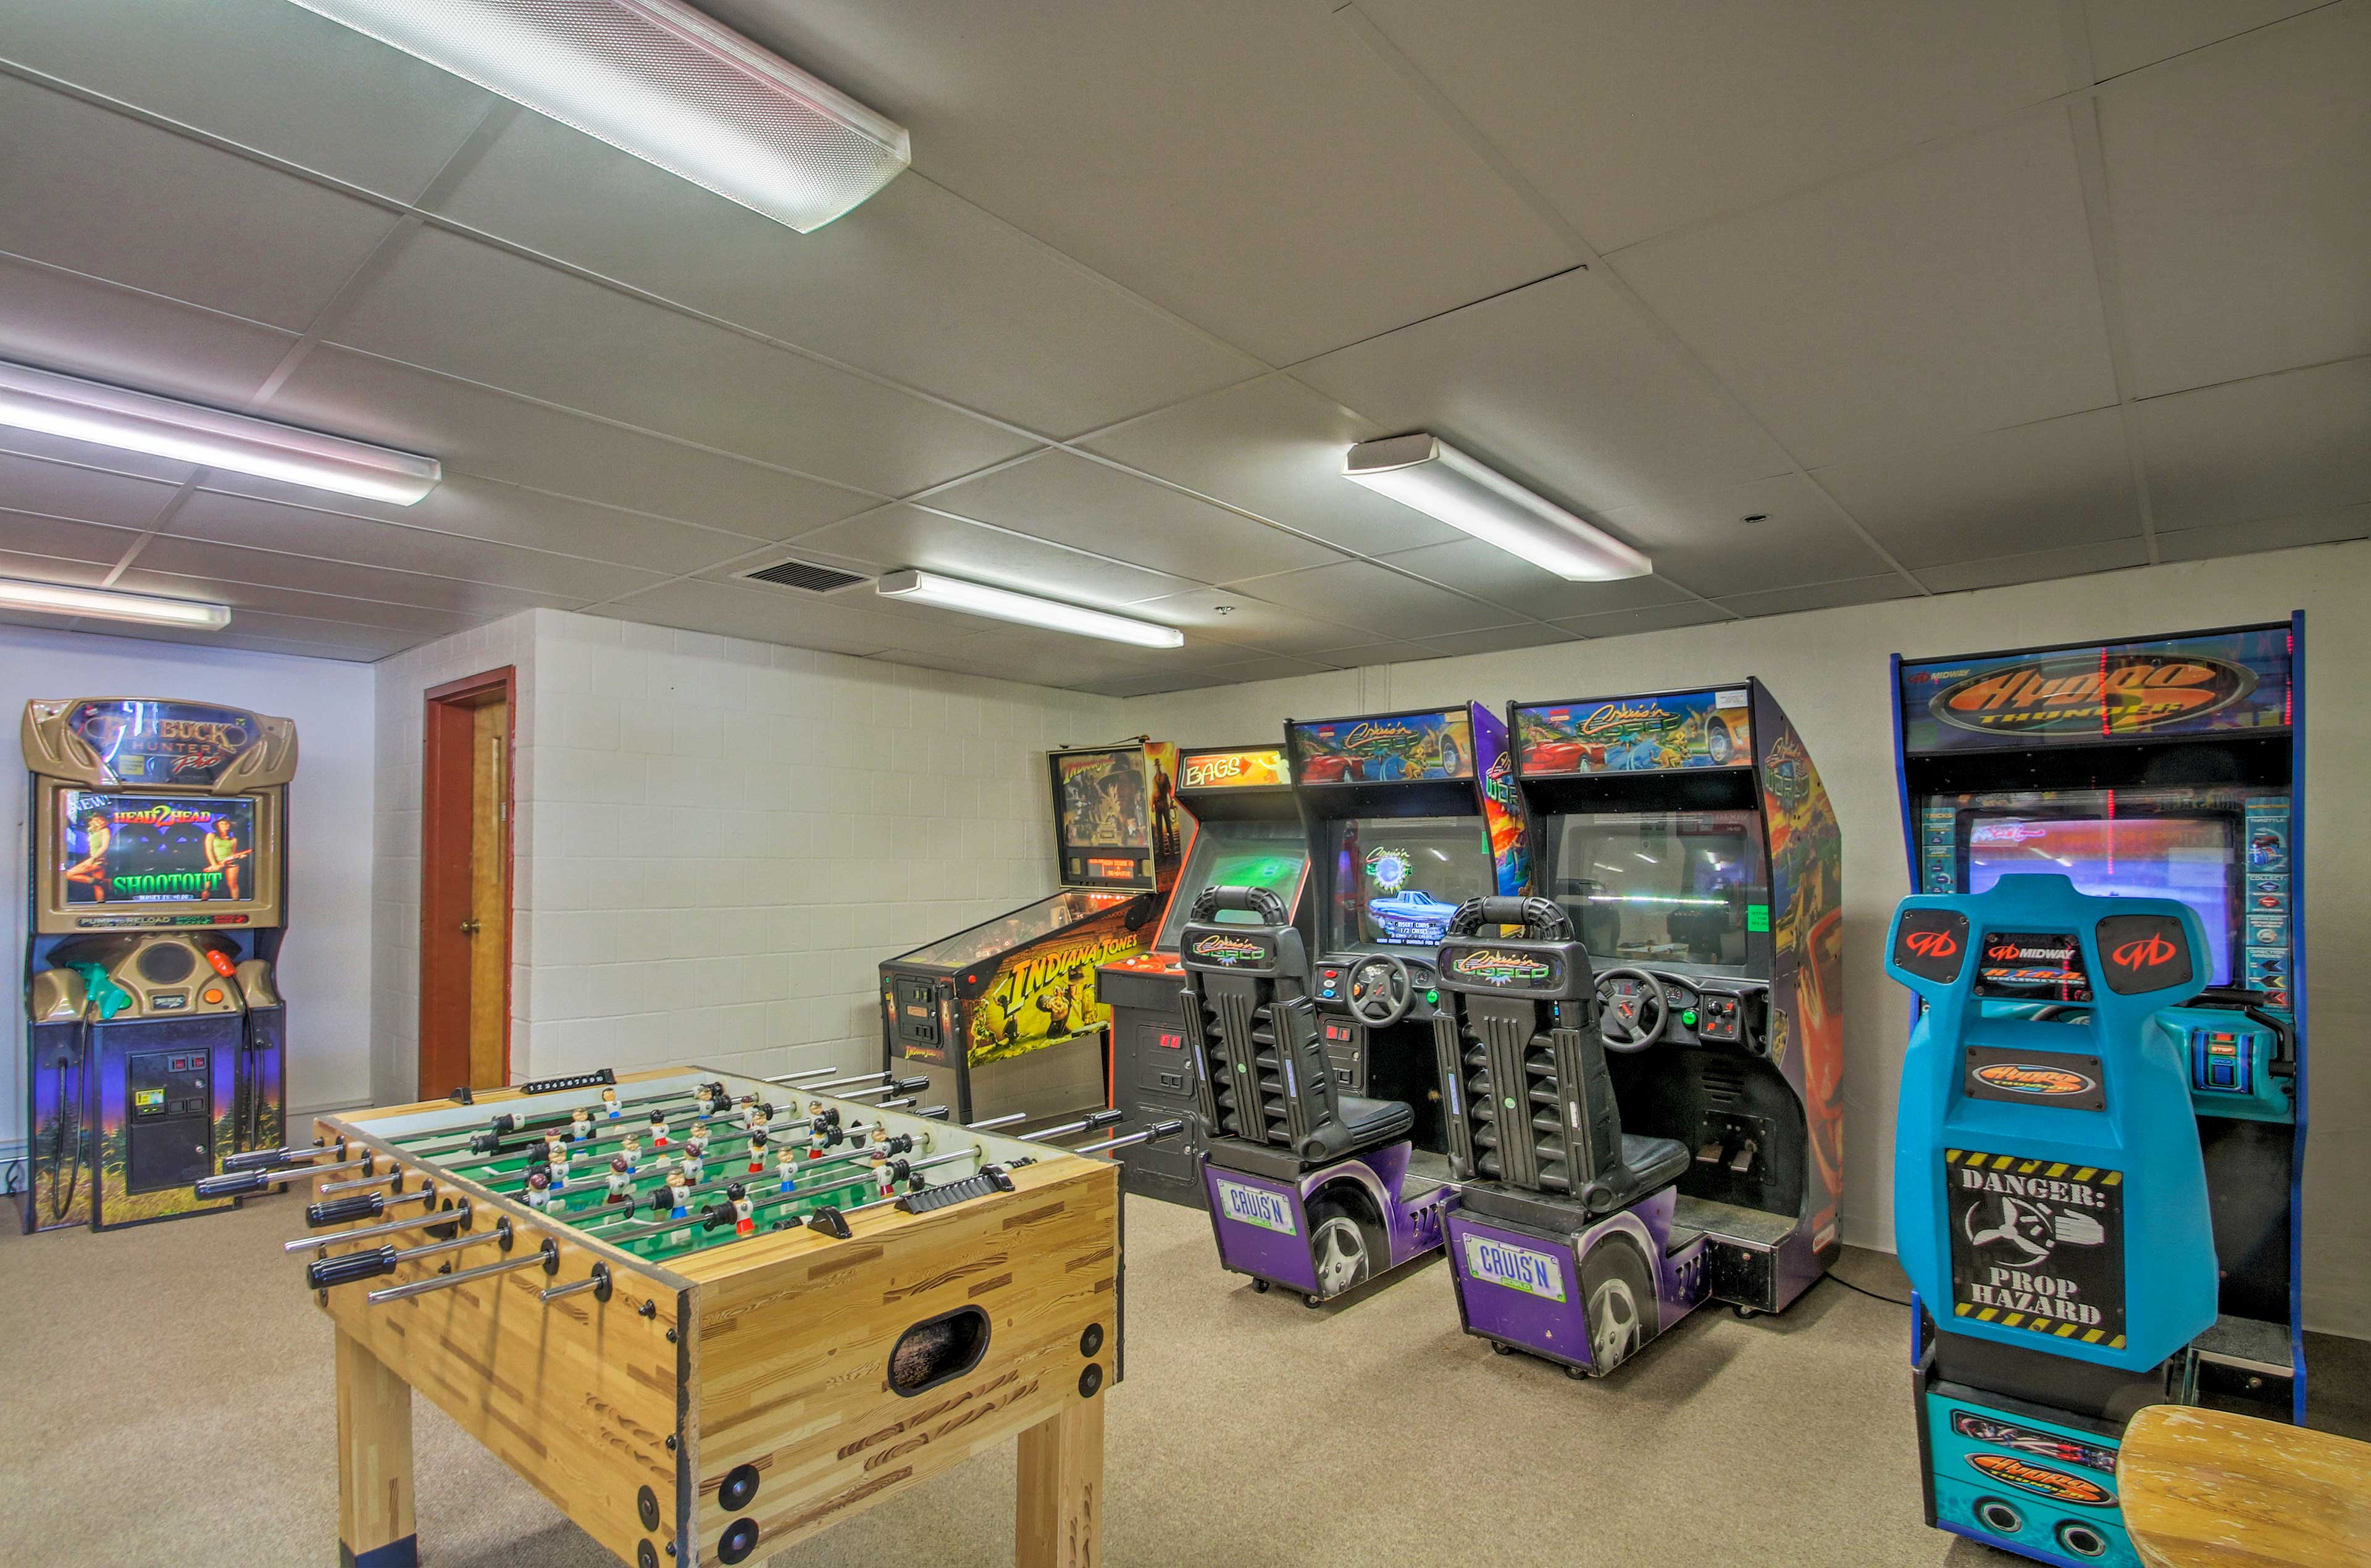 There are dozens of arcade games in the game room!